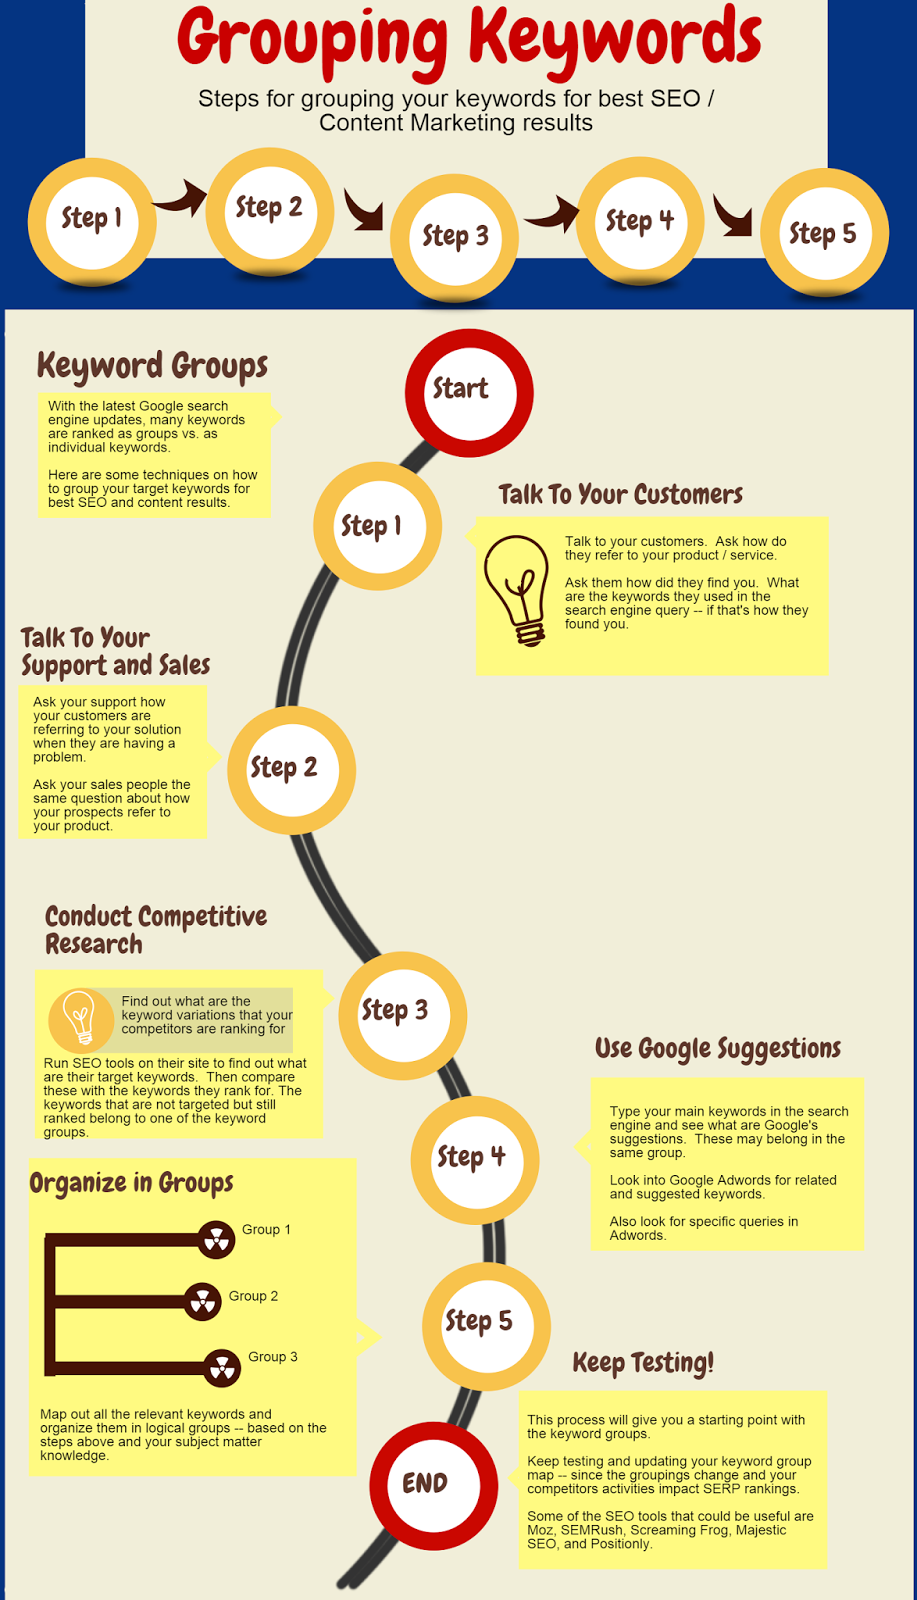 Keyword Grouping for Best Content Marketing Results